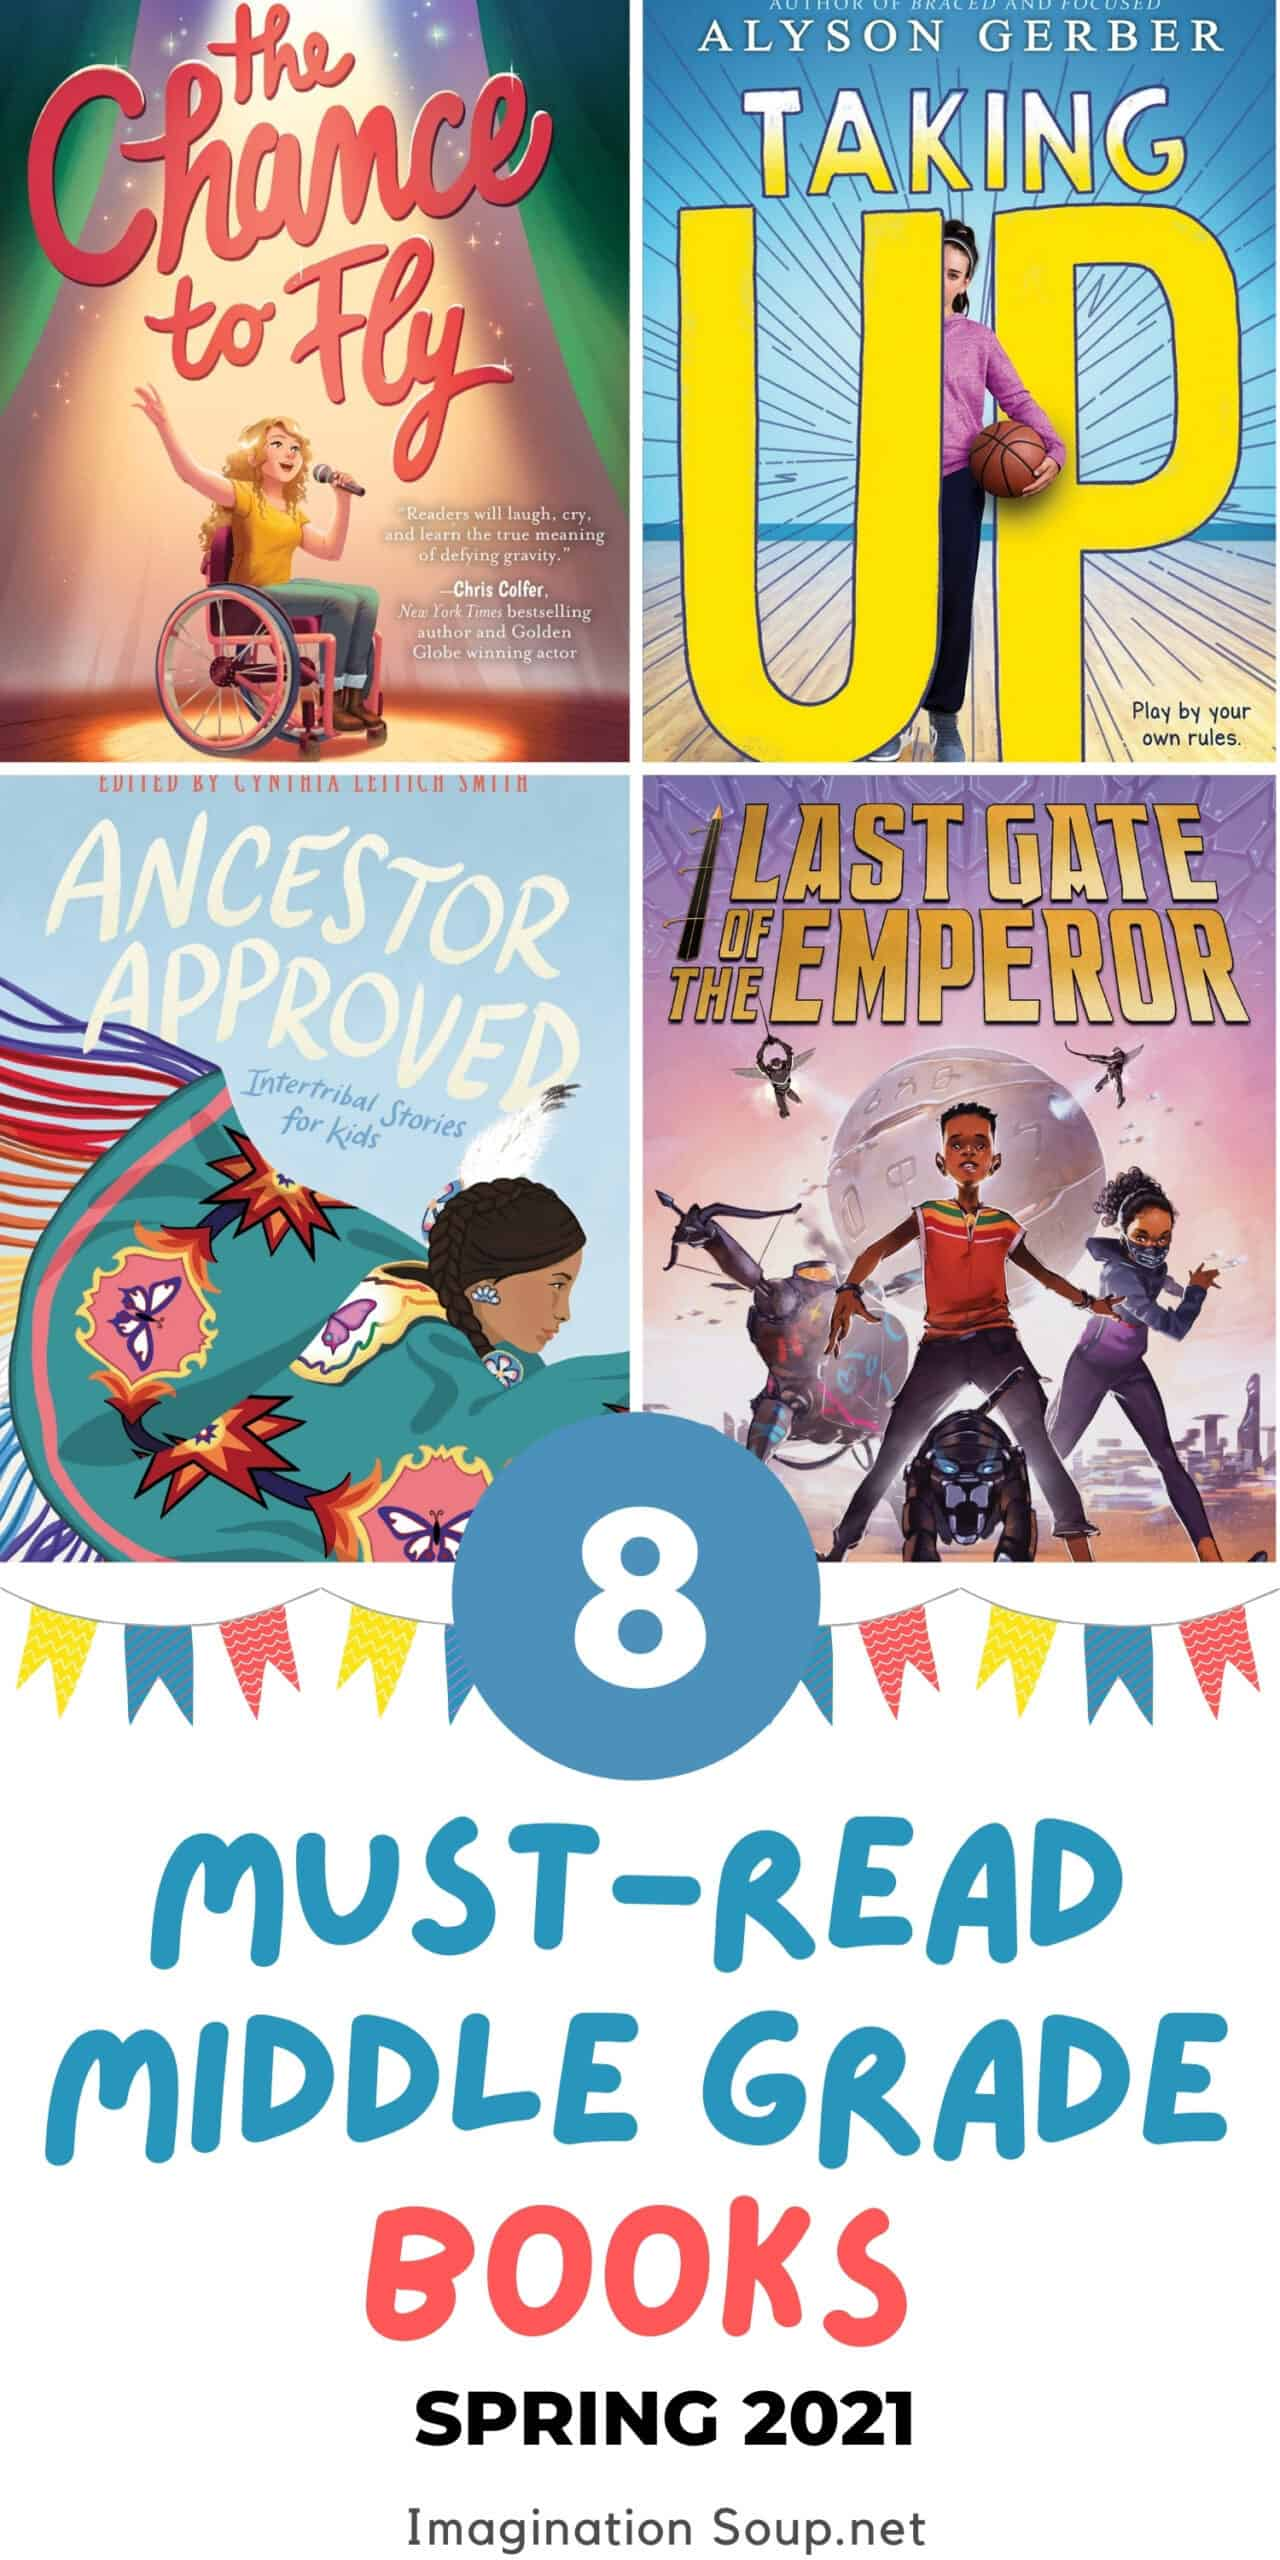 new middle grade books, spring 2021